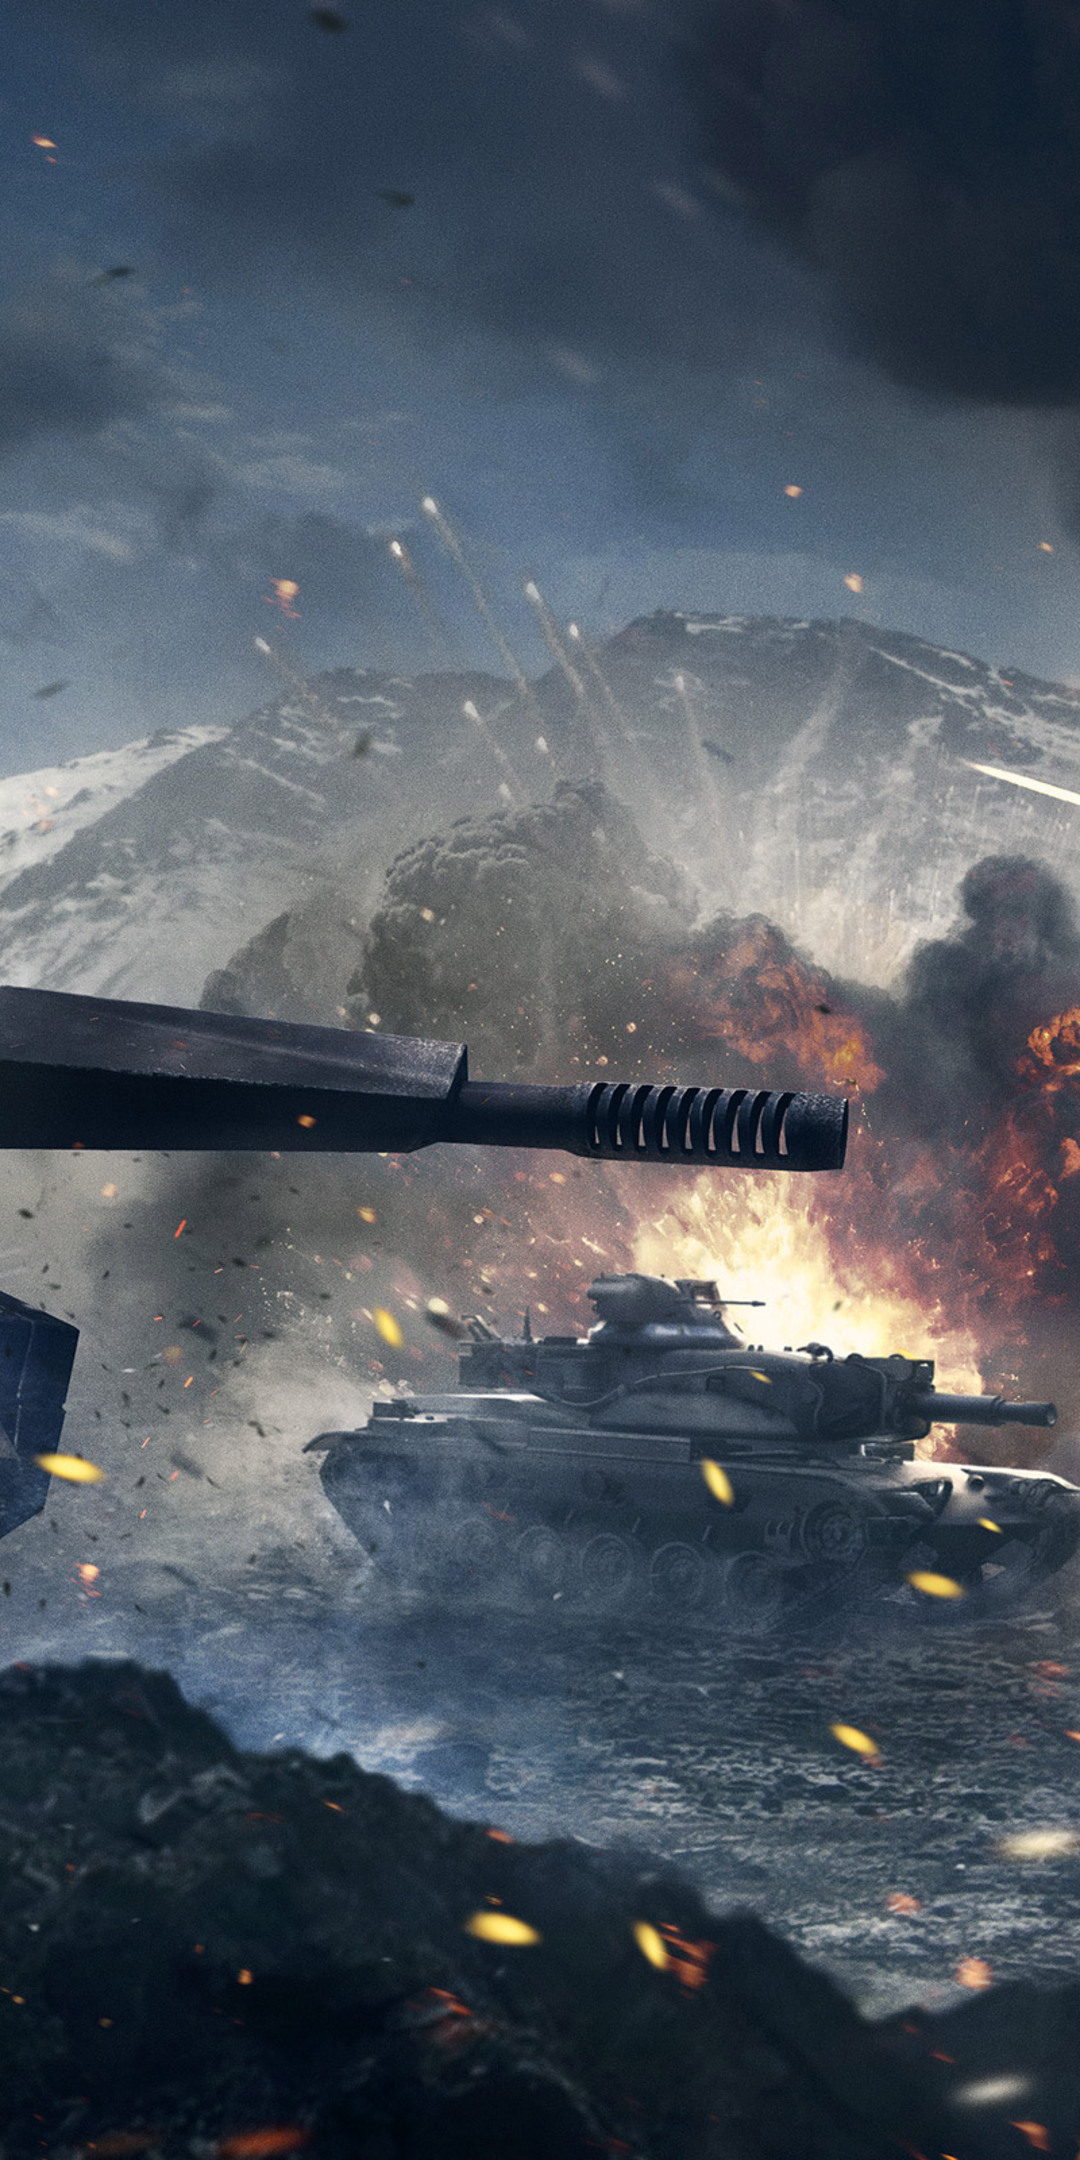 armored-warfare-hd-on.jpg